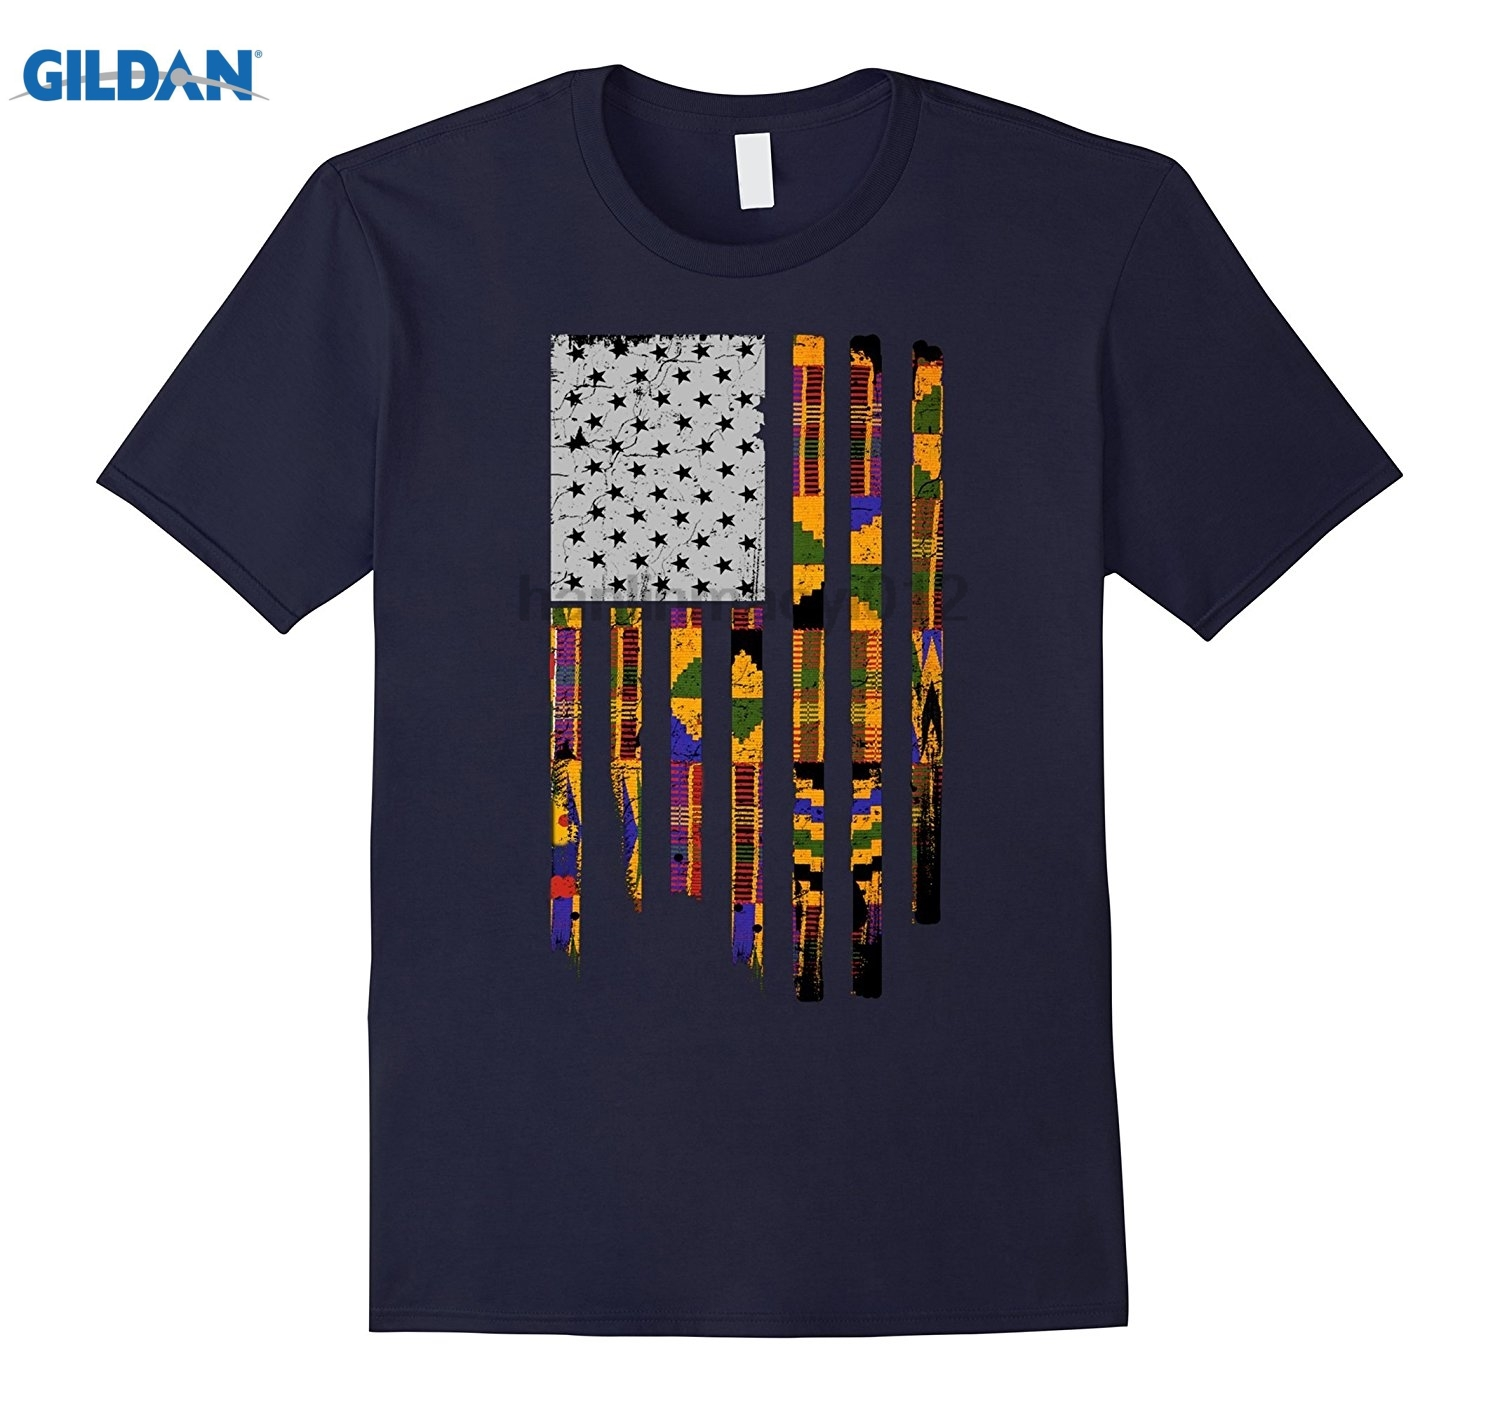 GILDAN Juneteenth Pan African Flag Freedom Day Black History Mothers Day Ms. T-shirt